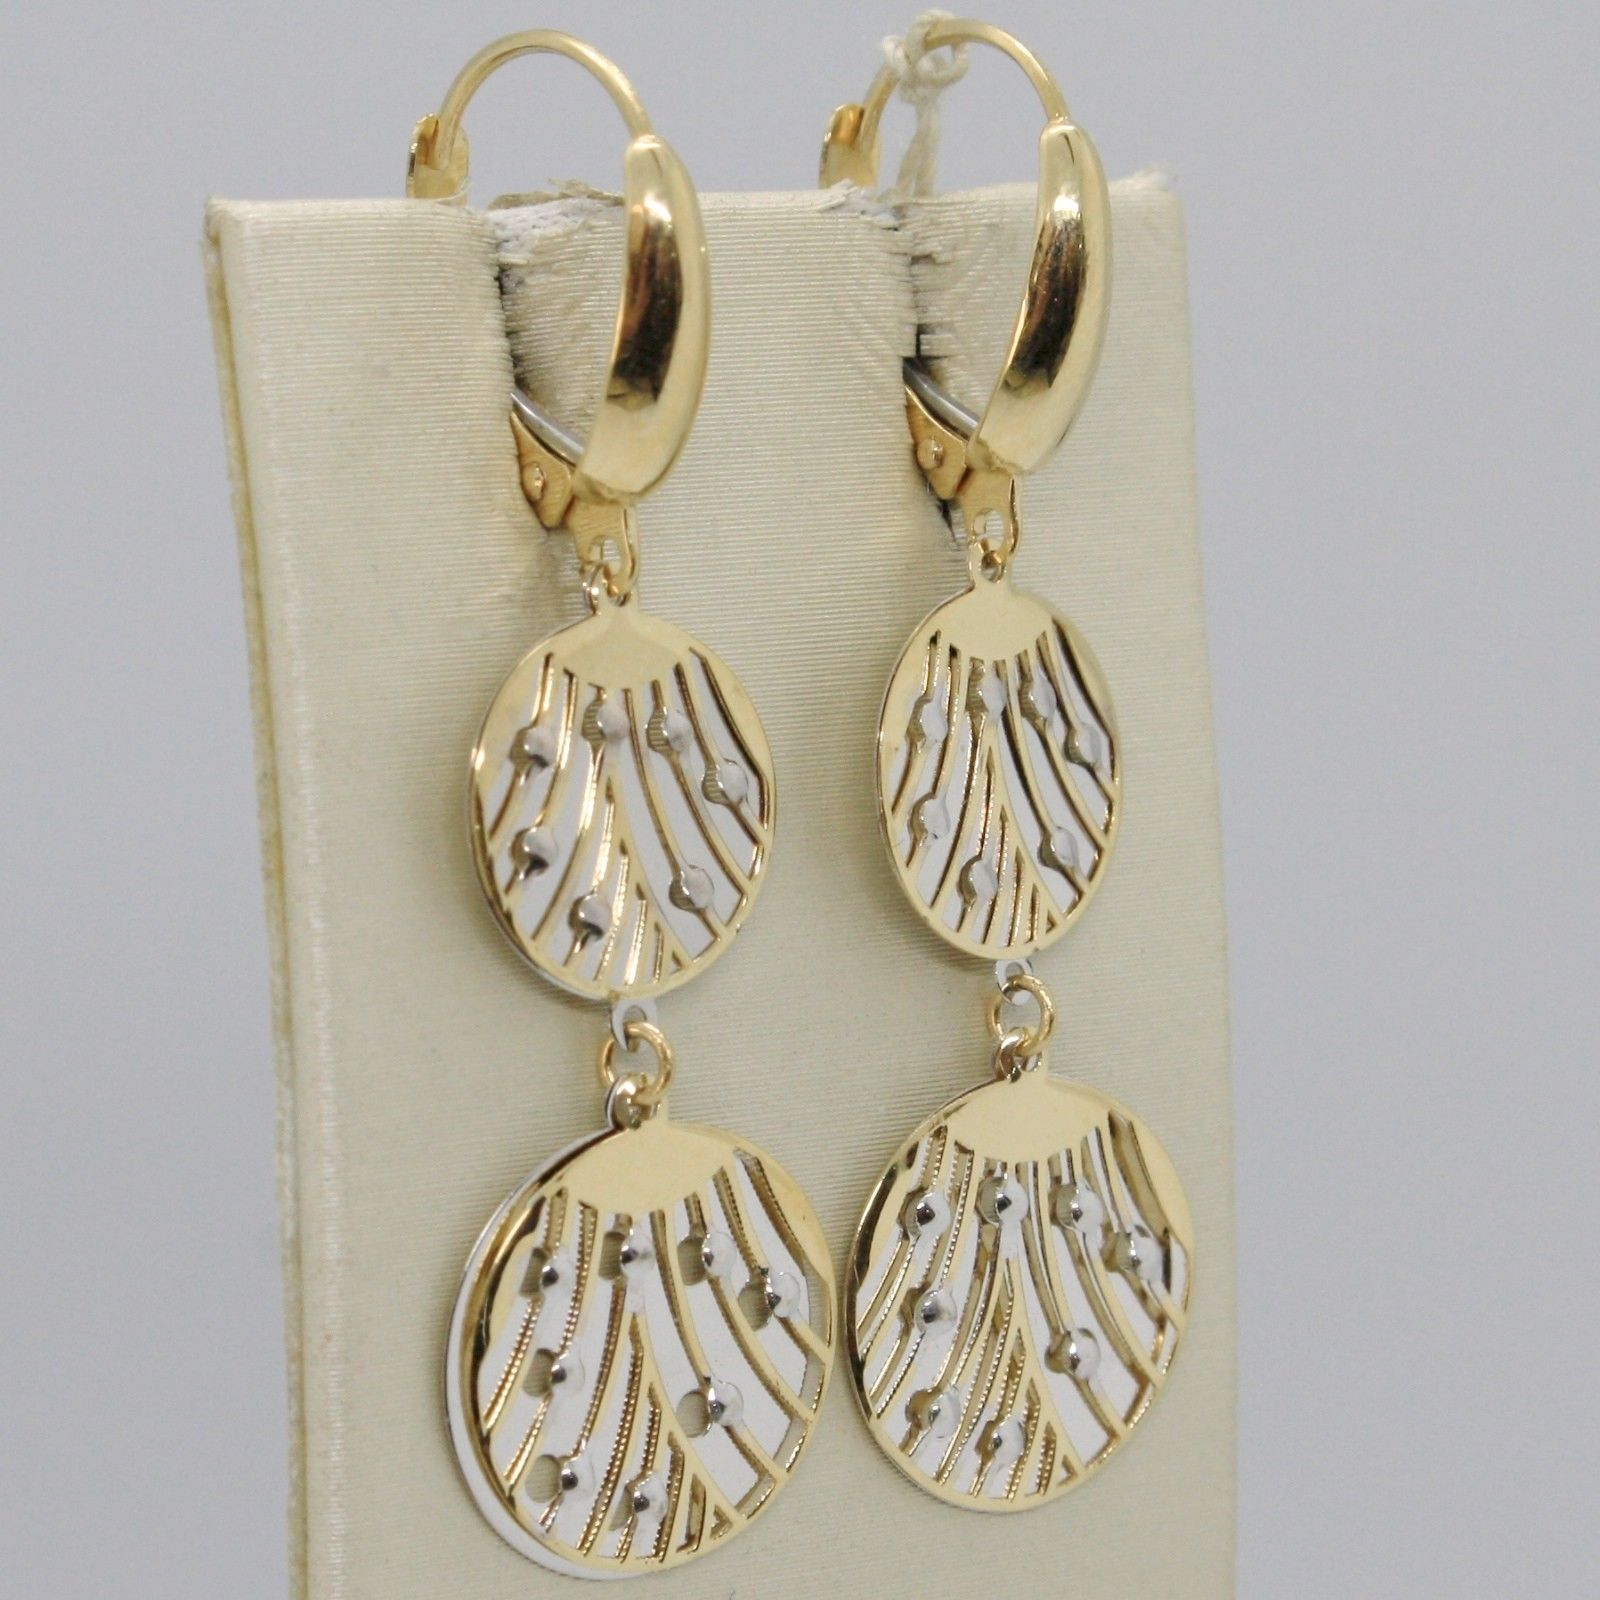 SOLID 18K YELLOW WHITE GOLD PENDANT EARRINGS, DOUBLE WORKED DISC, MADE IN ITALY